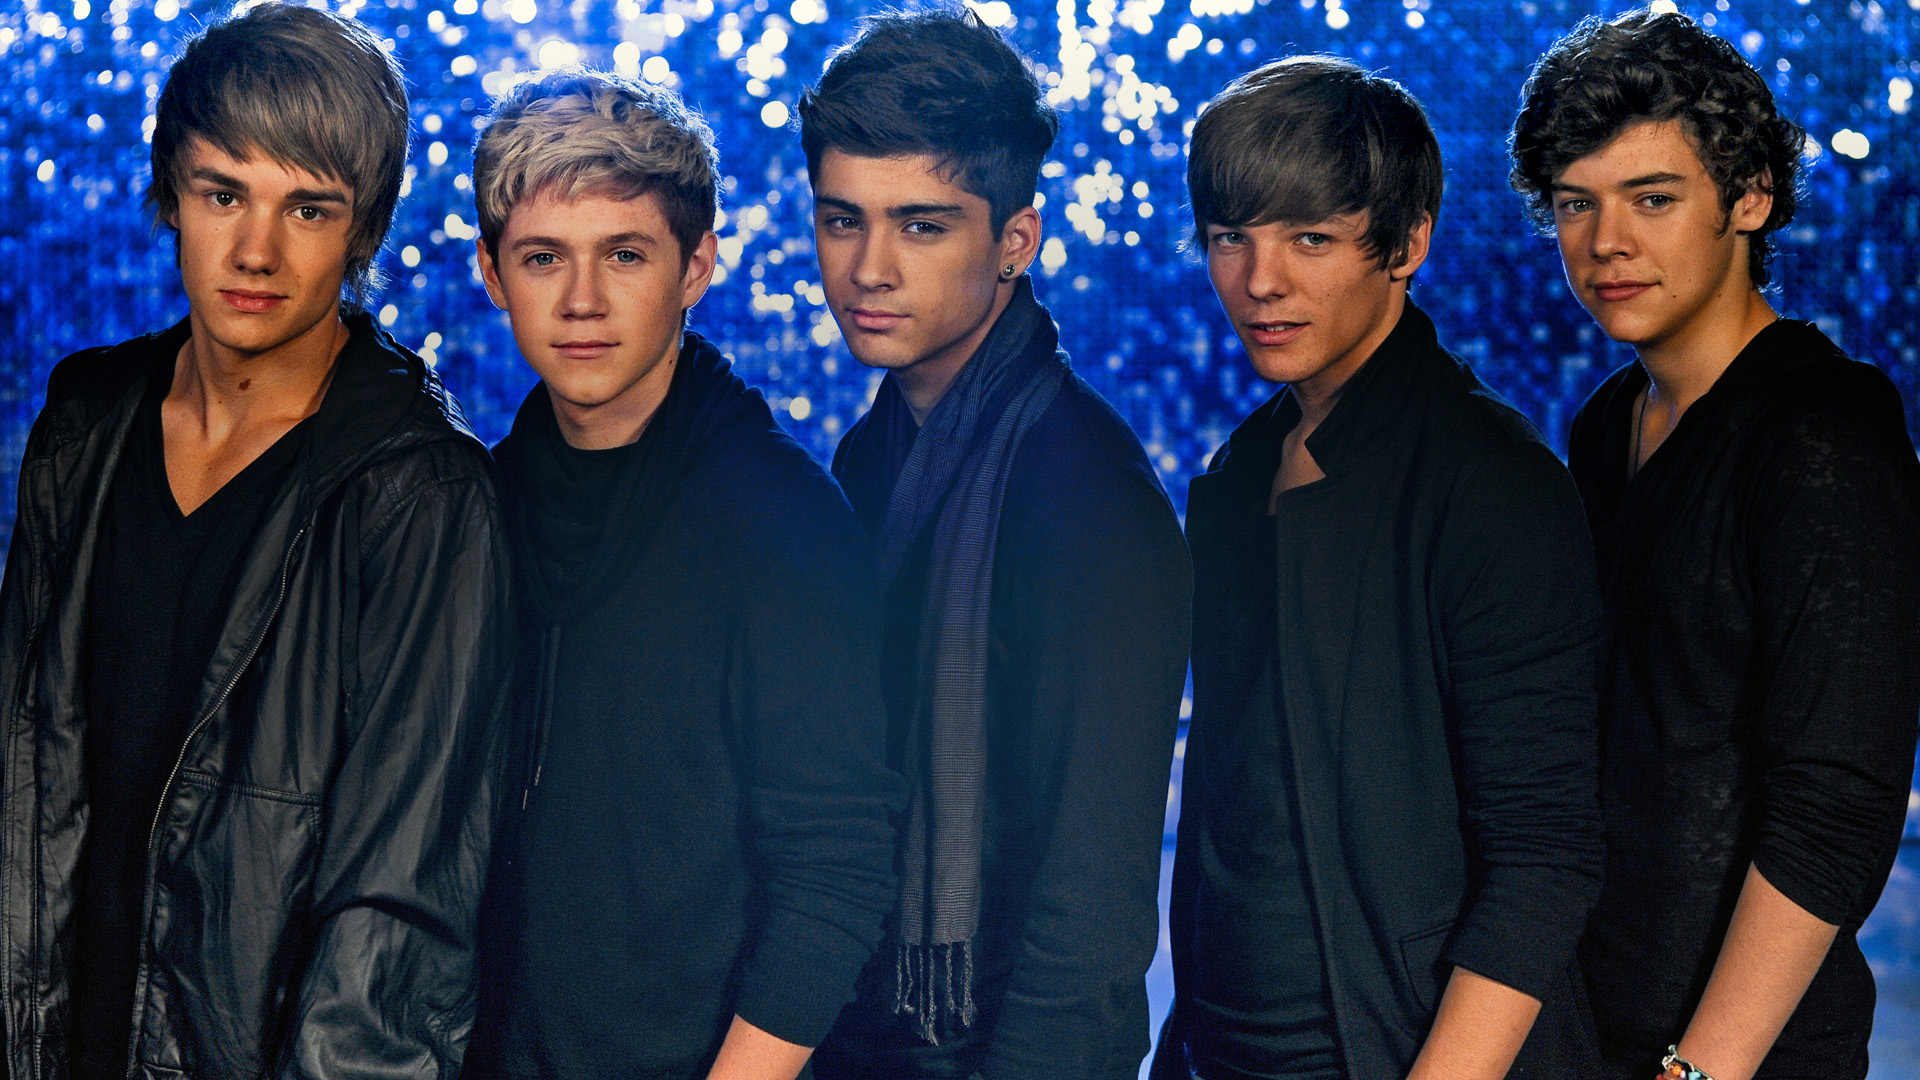 One Direction HD Wallpaper   Wallpaper High Definition High Quality 1920x1080